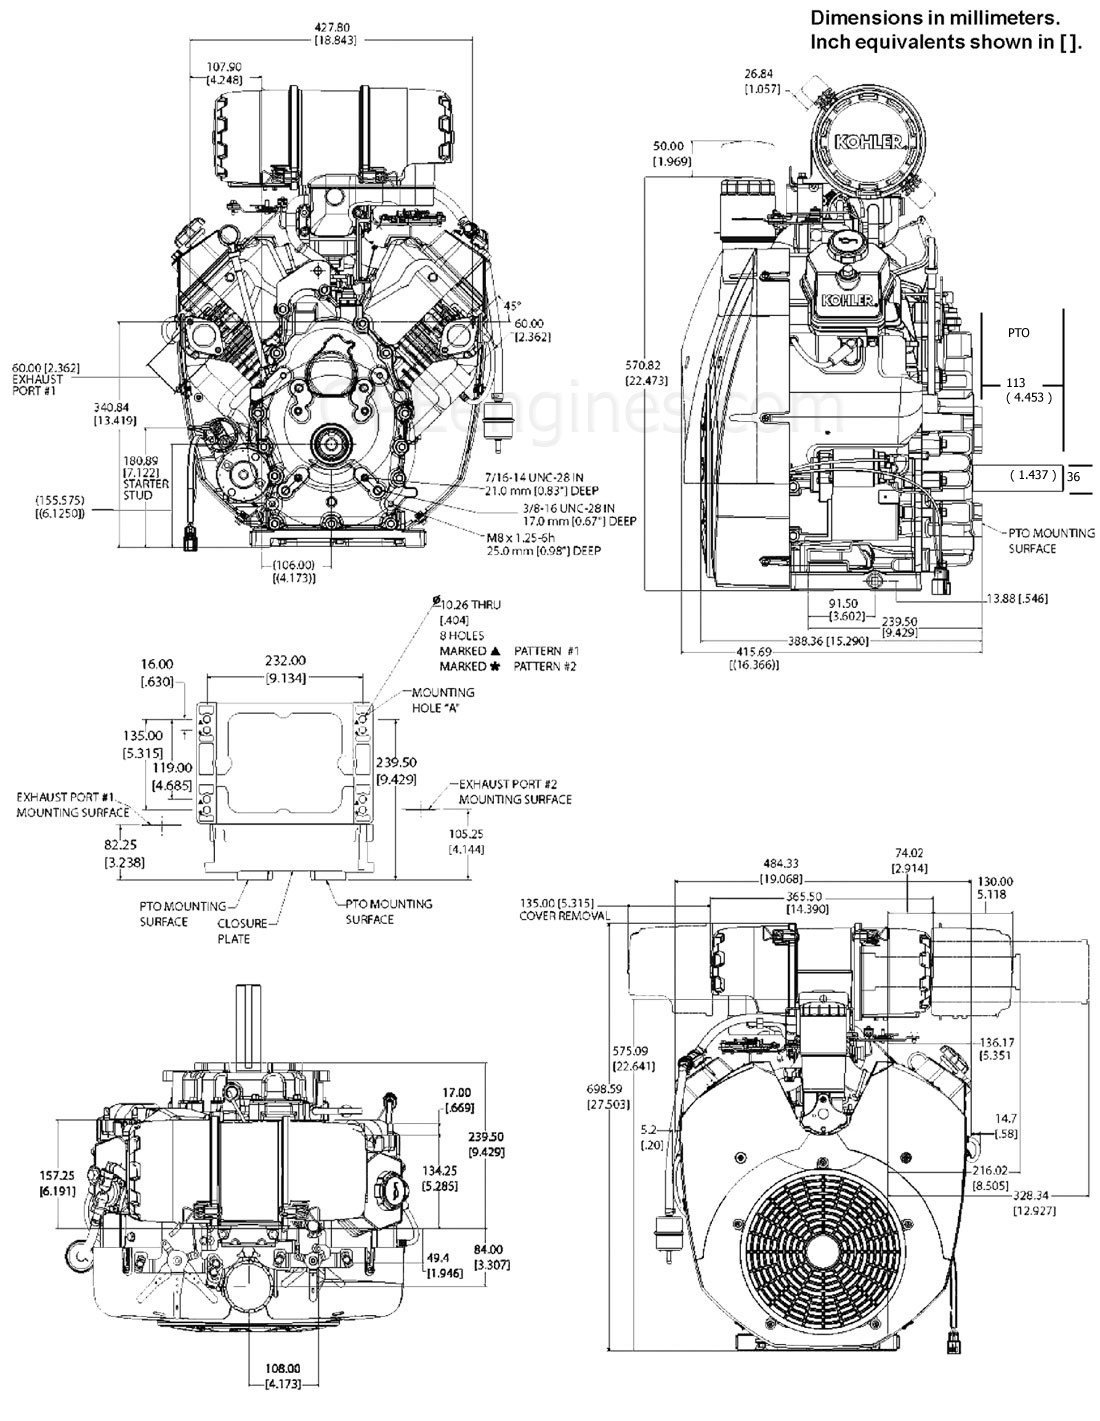 CH980_drawings ch940 ch960 ch980 ch1000 drawings kohler engines and parts store Kohler CH20S Carburetor Linkage at bayanpartner.co